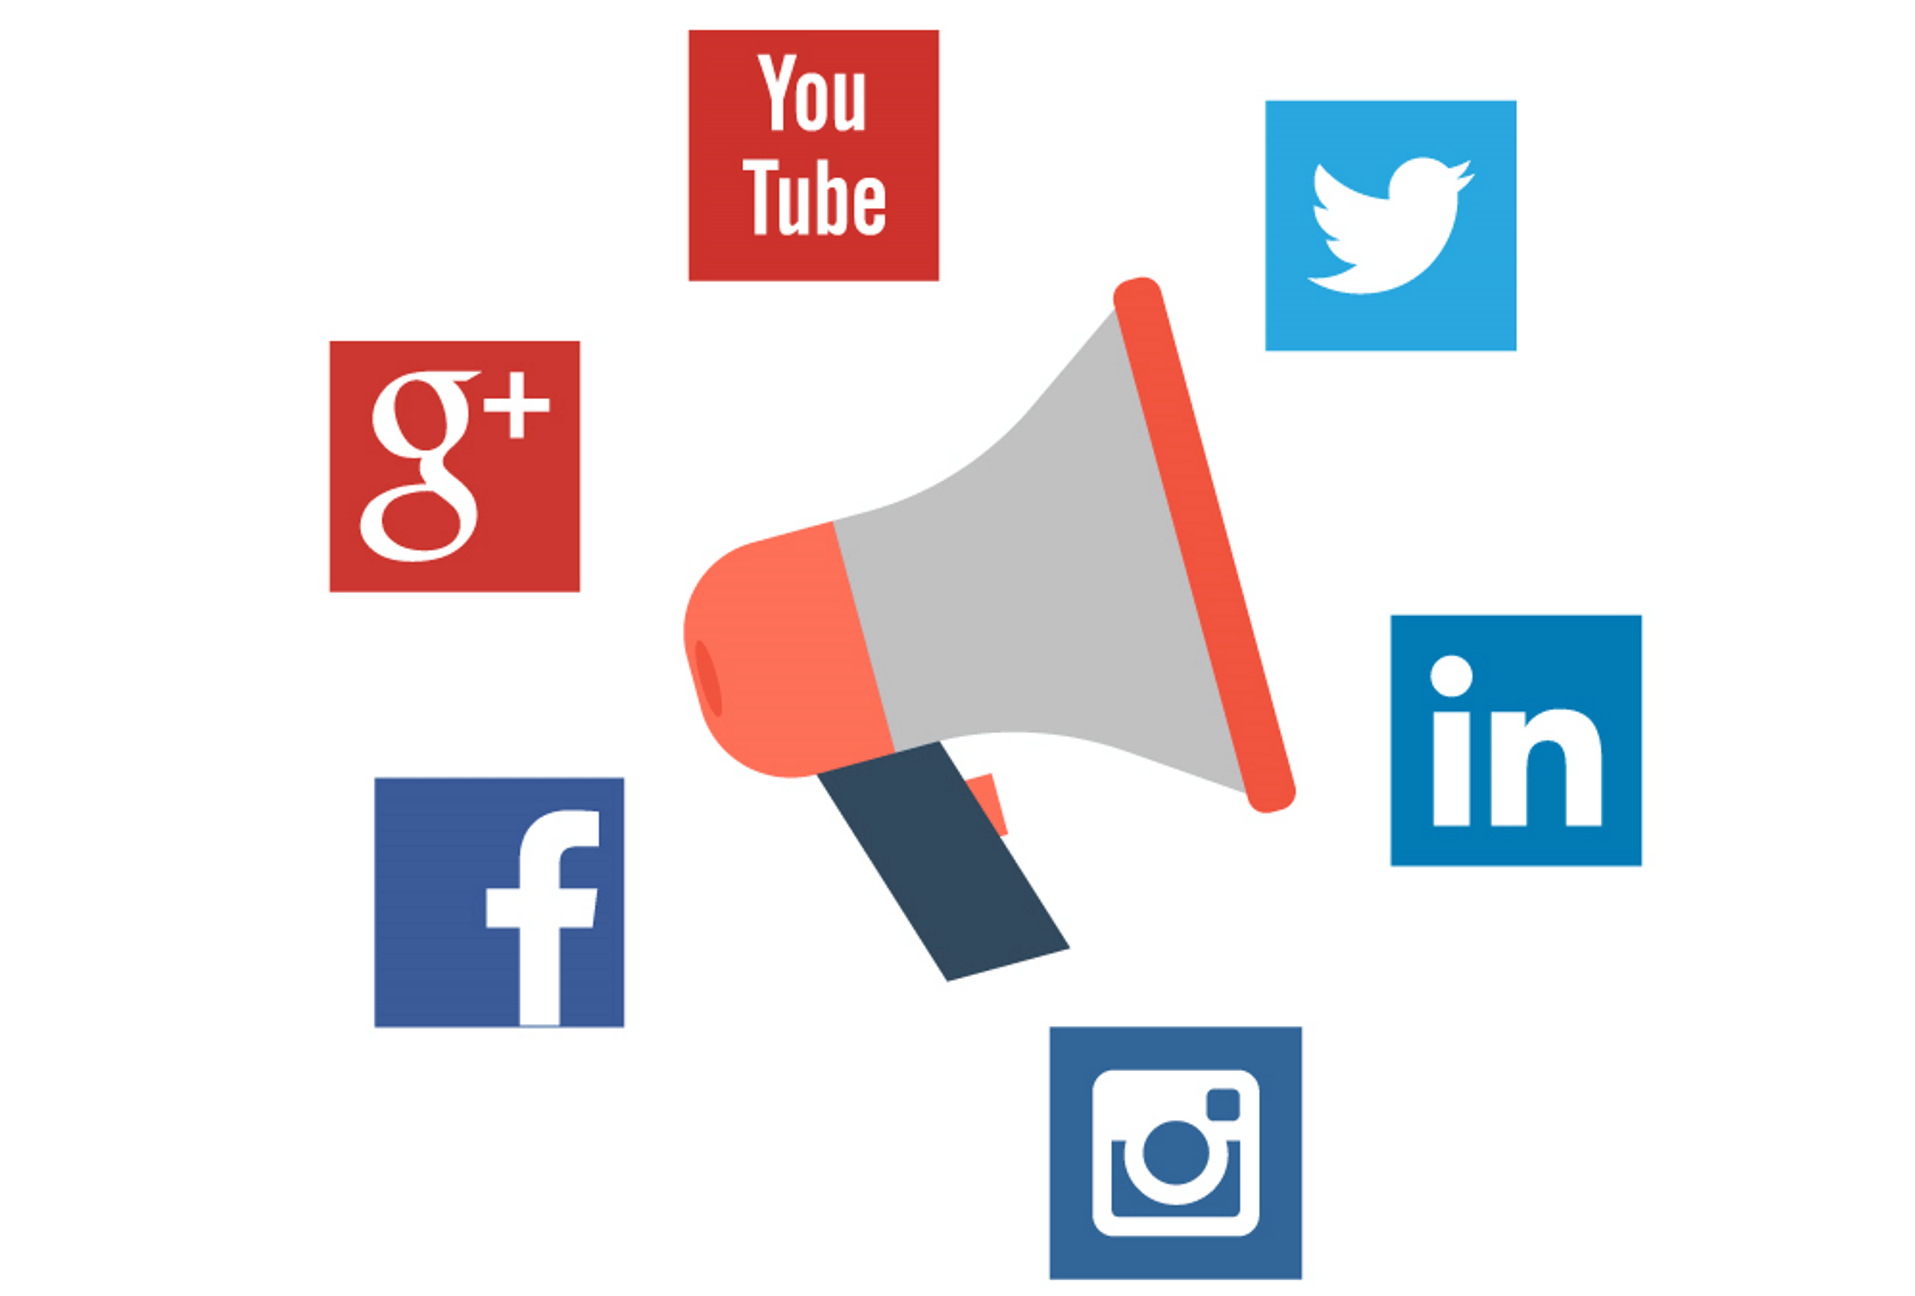 5 Effective Ways to Use Social Media with PR